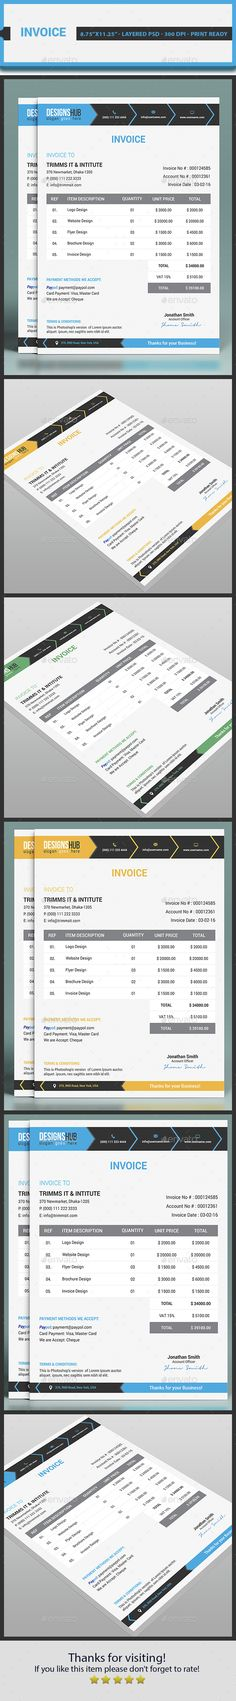 Business Invoice Templates v3 Template, Business and Buy business - indesign invoice template